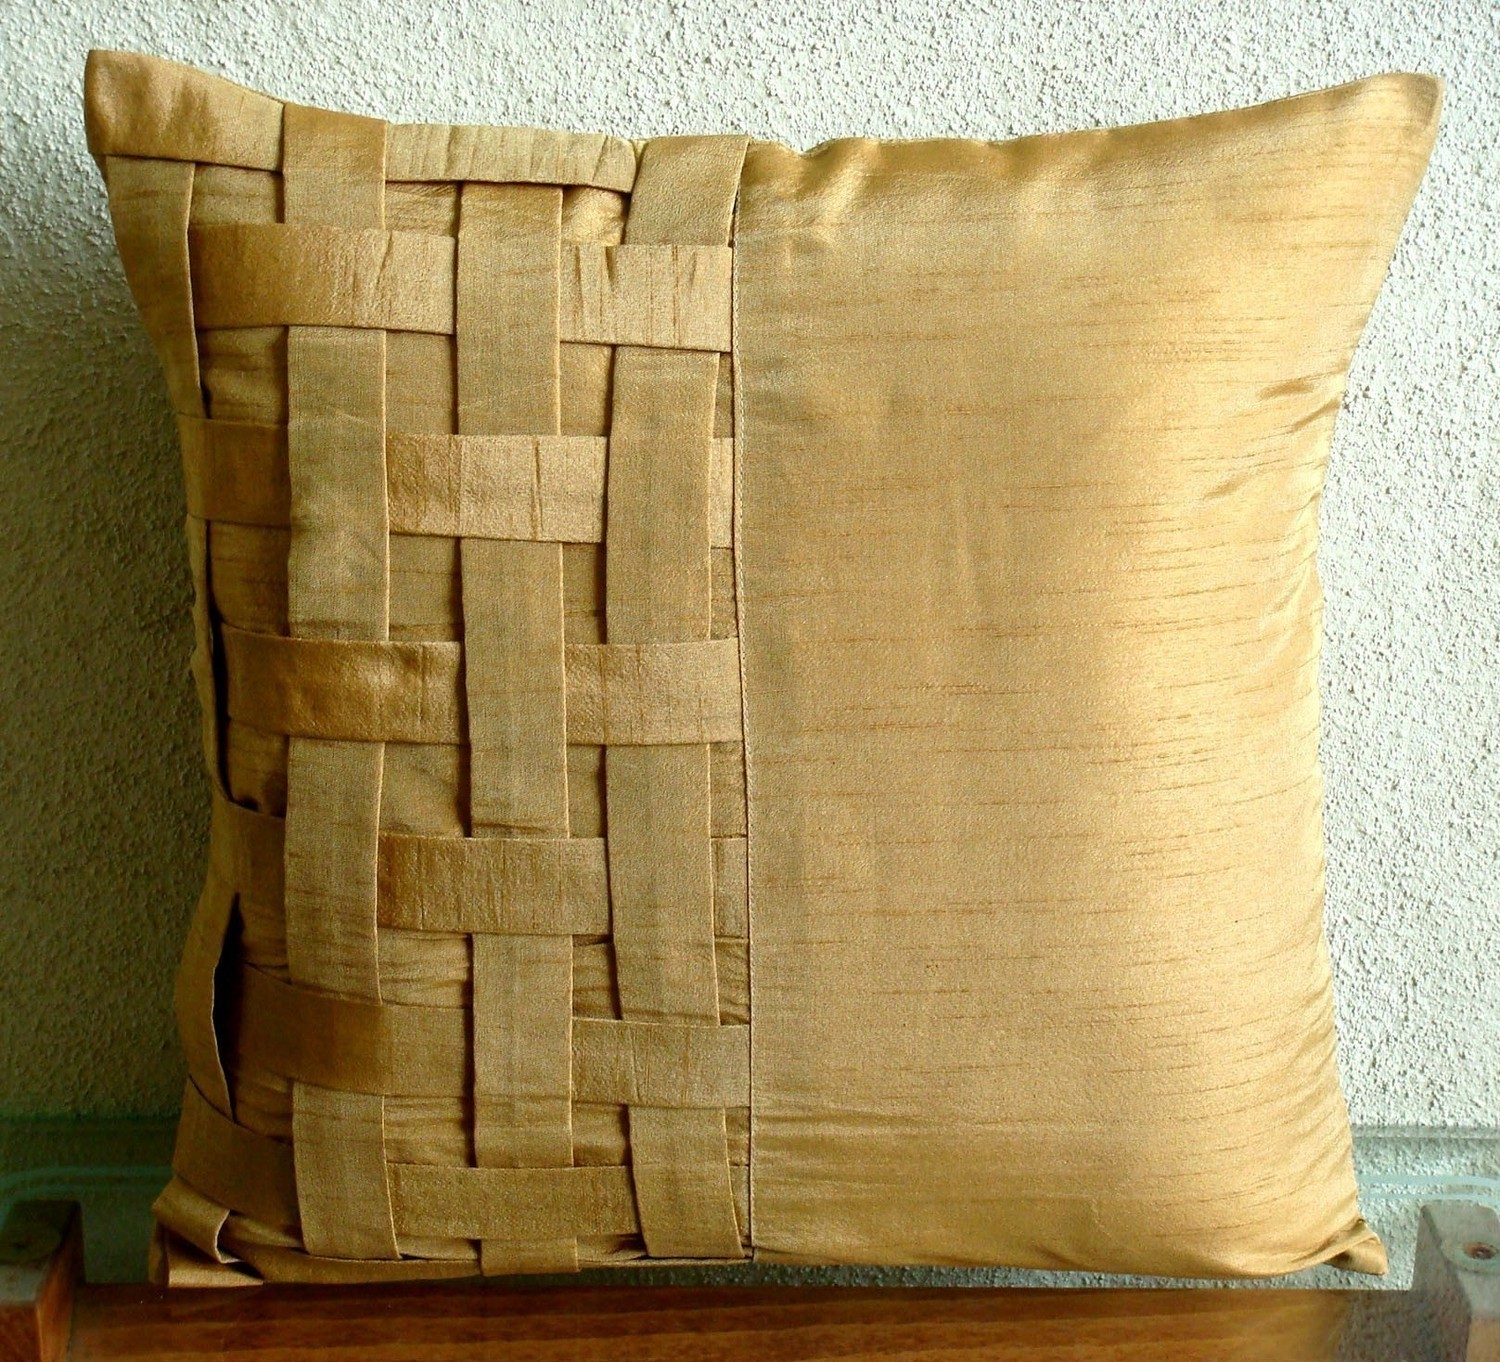 Large Decorative Pillows | 12x18 Pillow Cover | Gold Throw Pillows